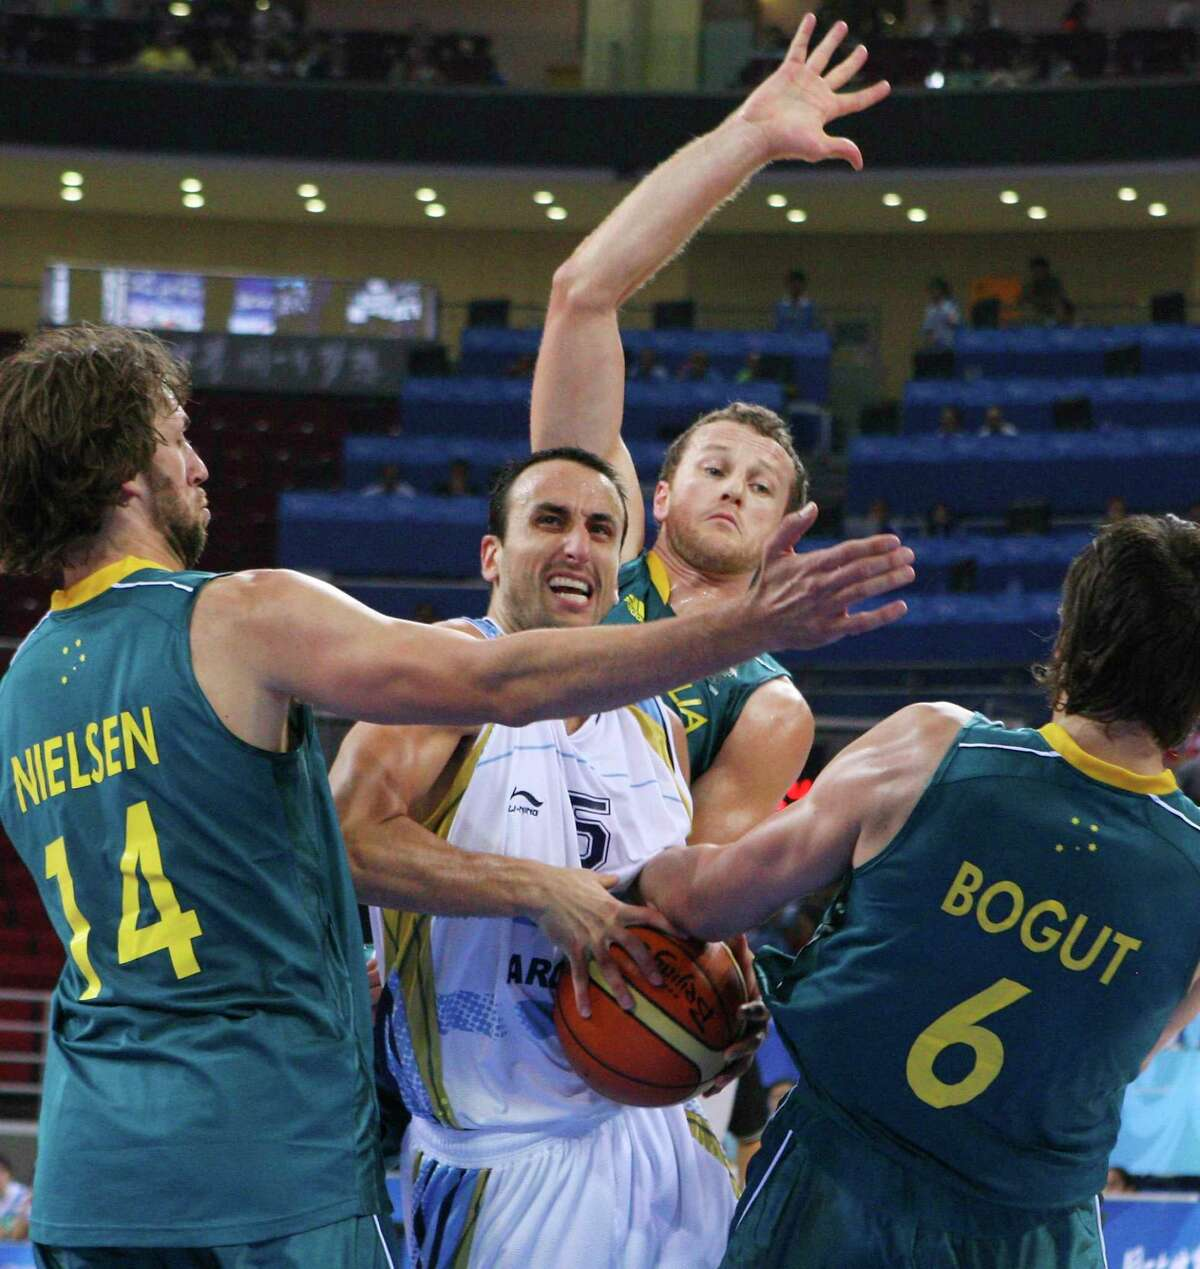 FOR SPORTS - Argentina's Manu Ginobili looks for room between Australia's Matt Nielsen (from left) Glen Saville and Andrew Bogut during first half action at the 2008 Beijing Olympics Tuesday Aug 12, 2008 in Beijing, China. (PHOTO BY EDWARD A. ORNELAS/eornelas@express-news.net)